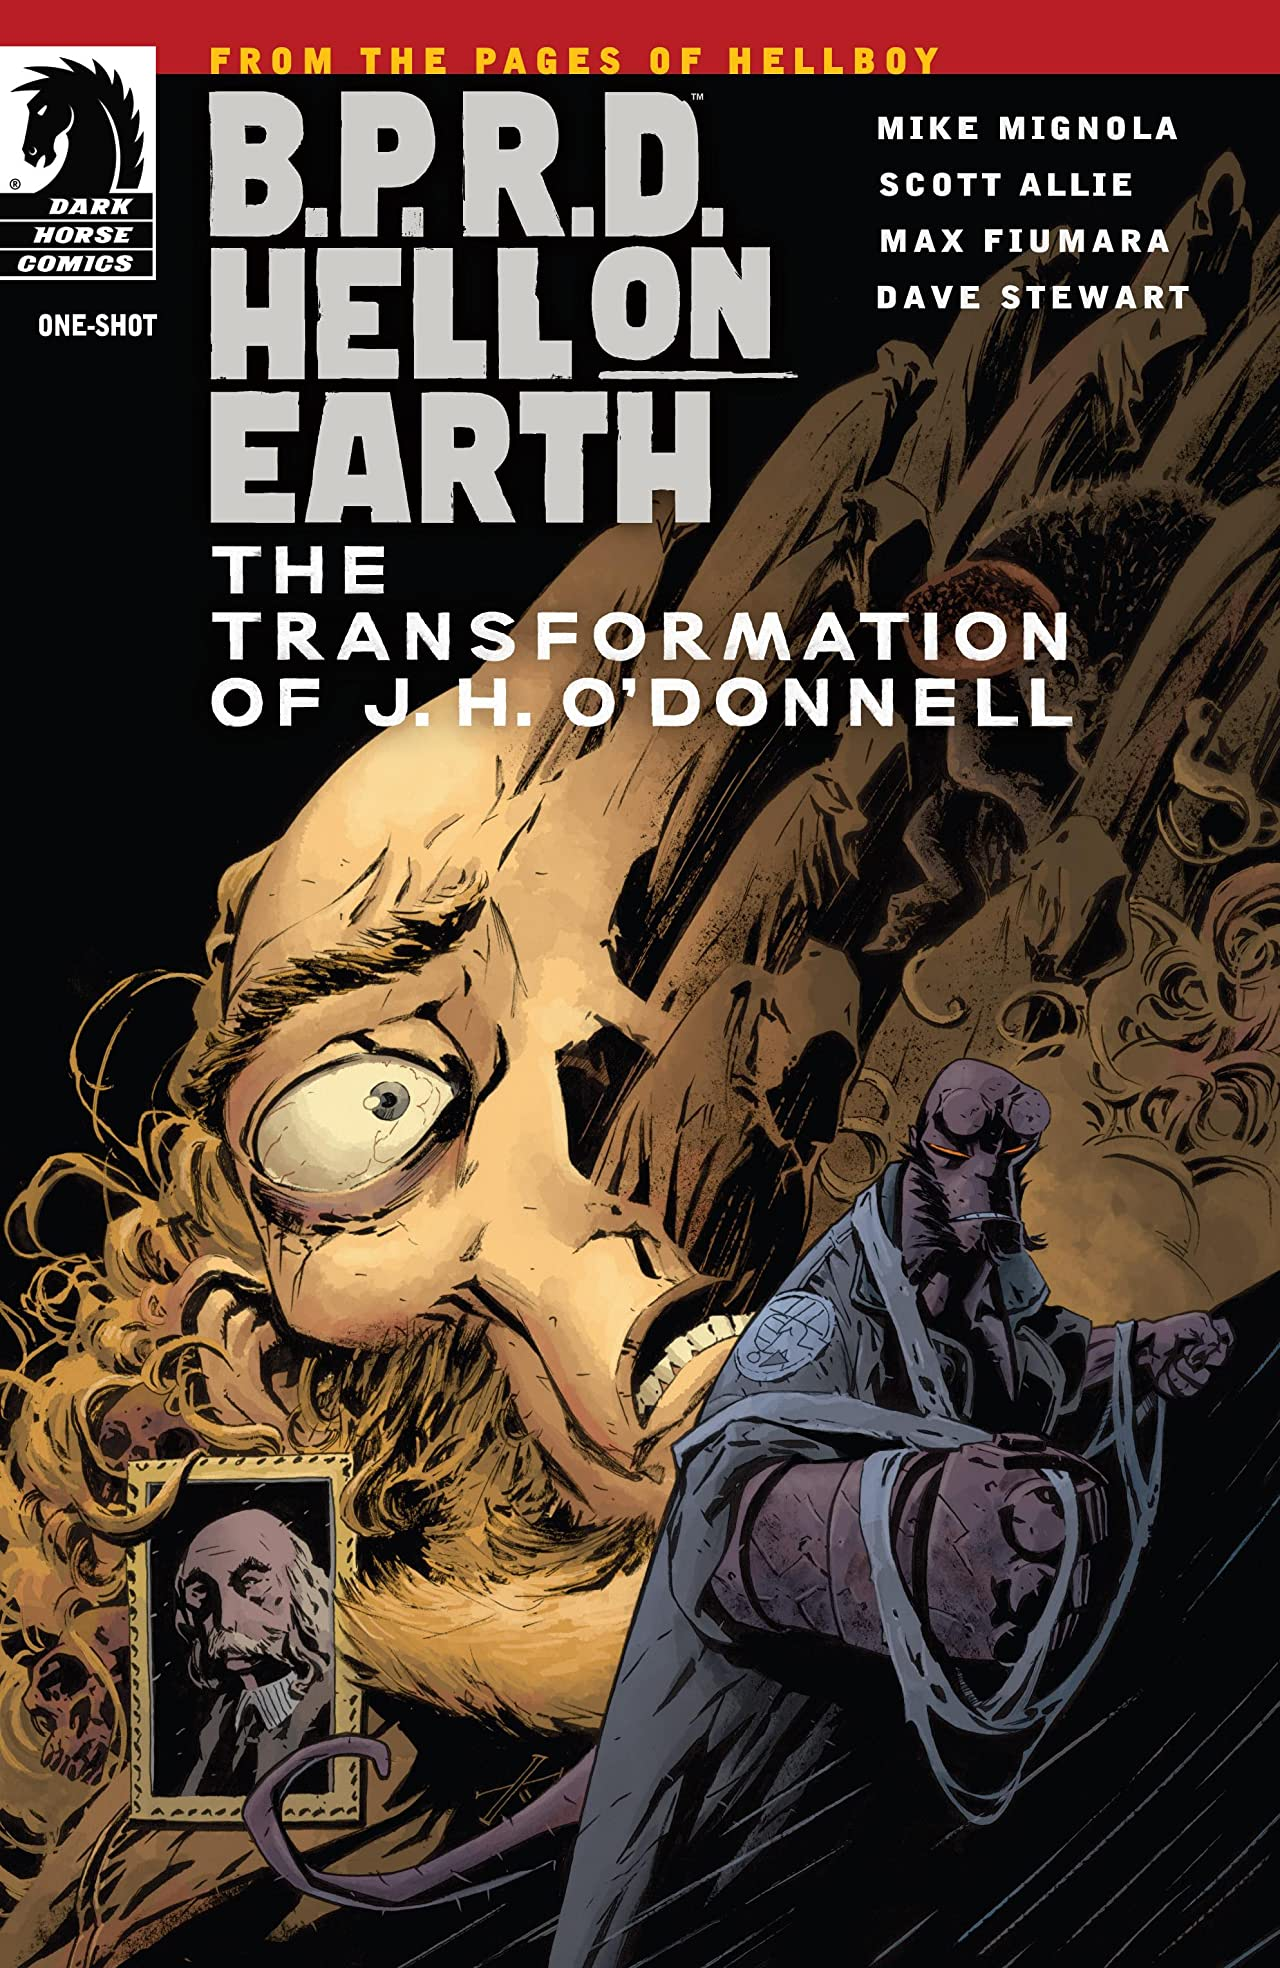 B.P.R.D.: Hell on Earth: The Transformation of J. H. O'Donnell #1